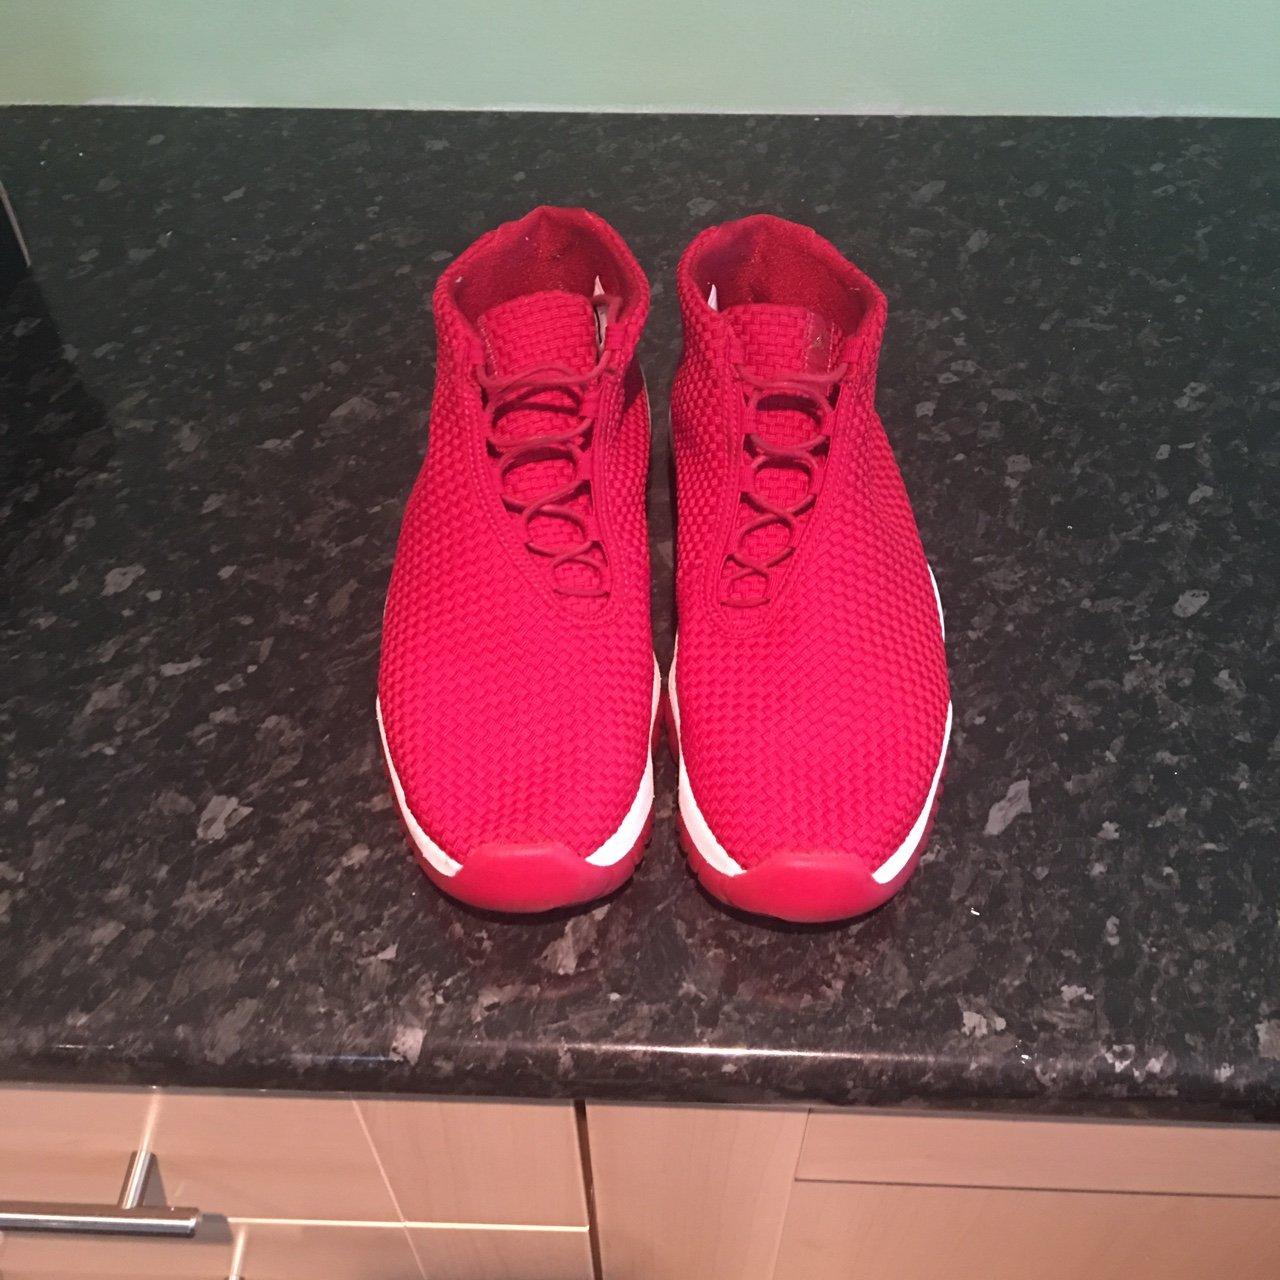 6f82d75ce74 Nike Air Jordan Future Gym Red.. UK11.. Great condition as a - Depop